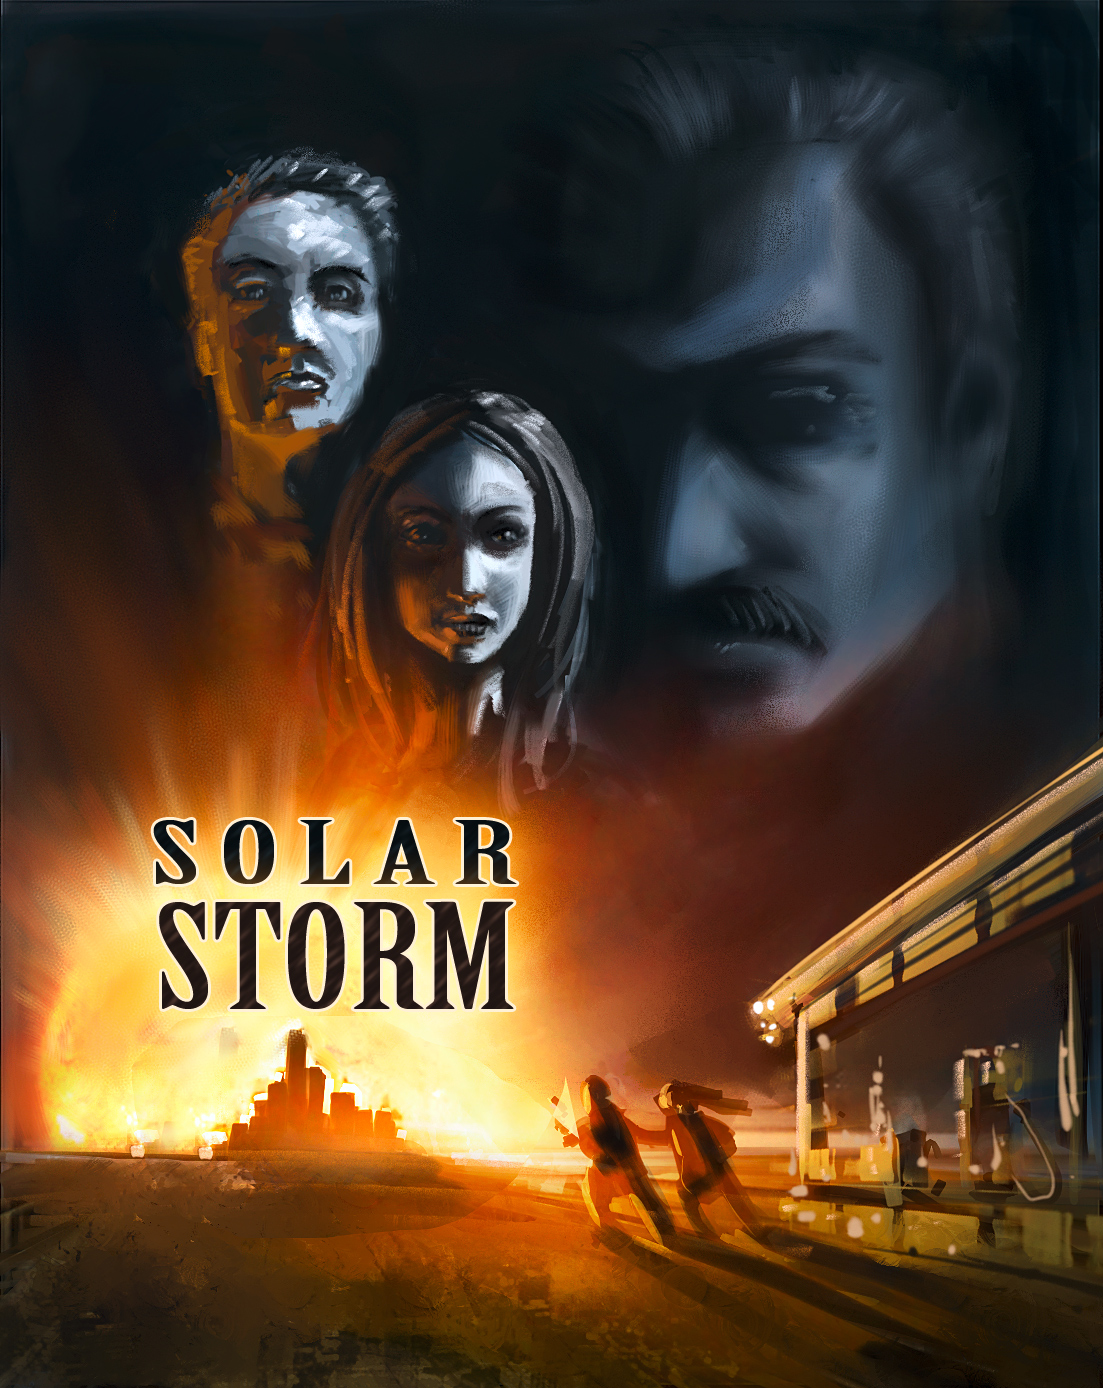 Joe Rabl Blog: SOLAR STORM: Story Idea and Original Idea ...